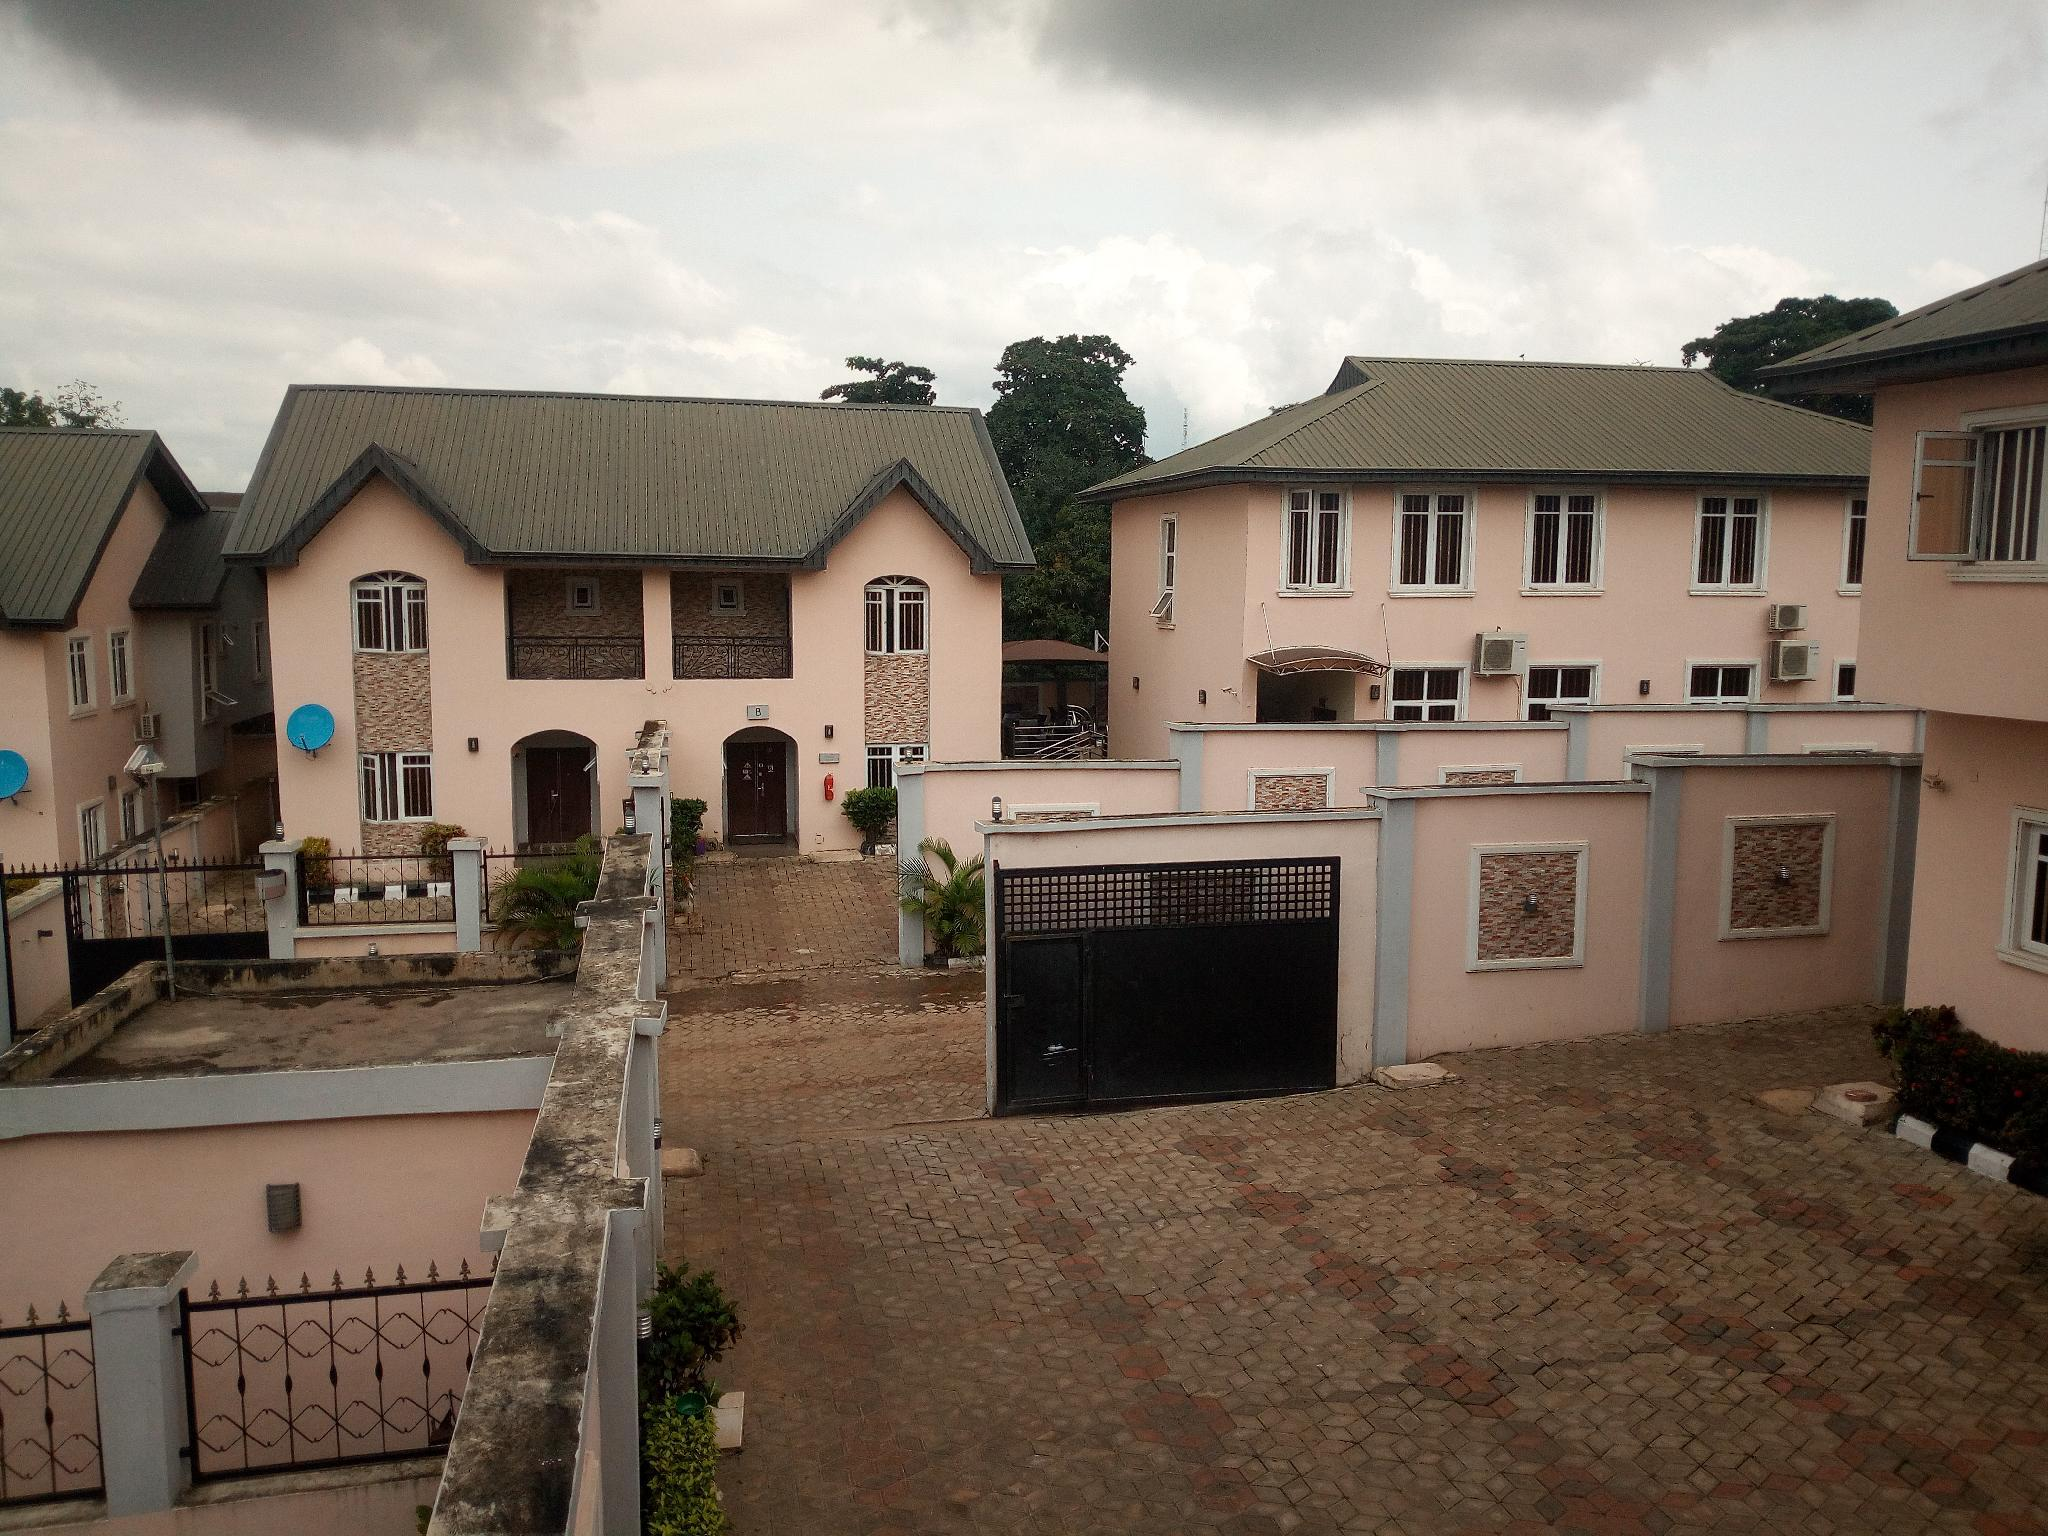 Bayse One Place, Jericho, IbadanNorth-West